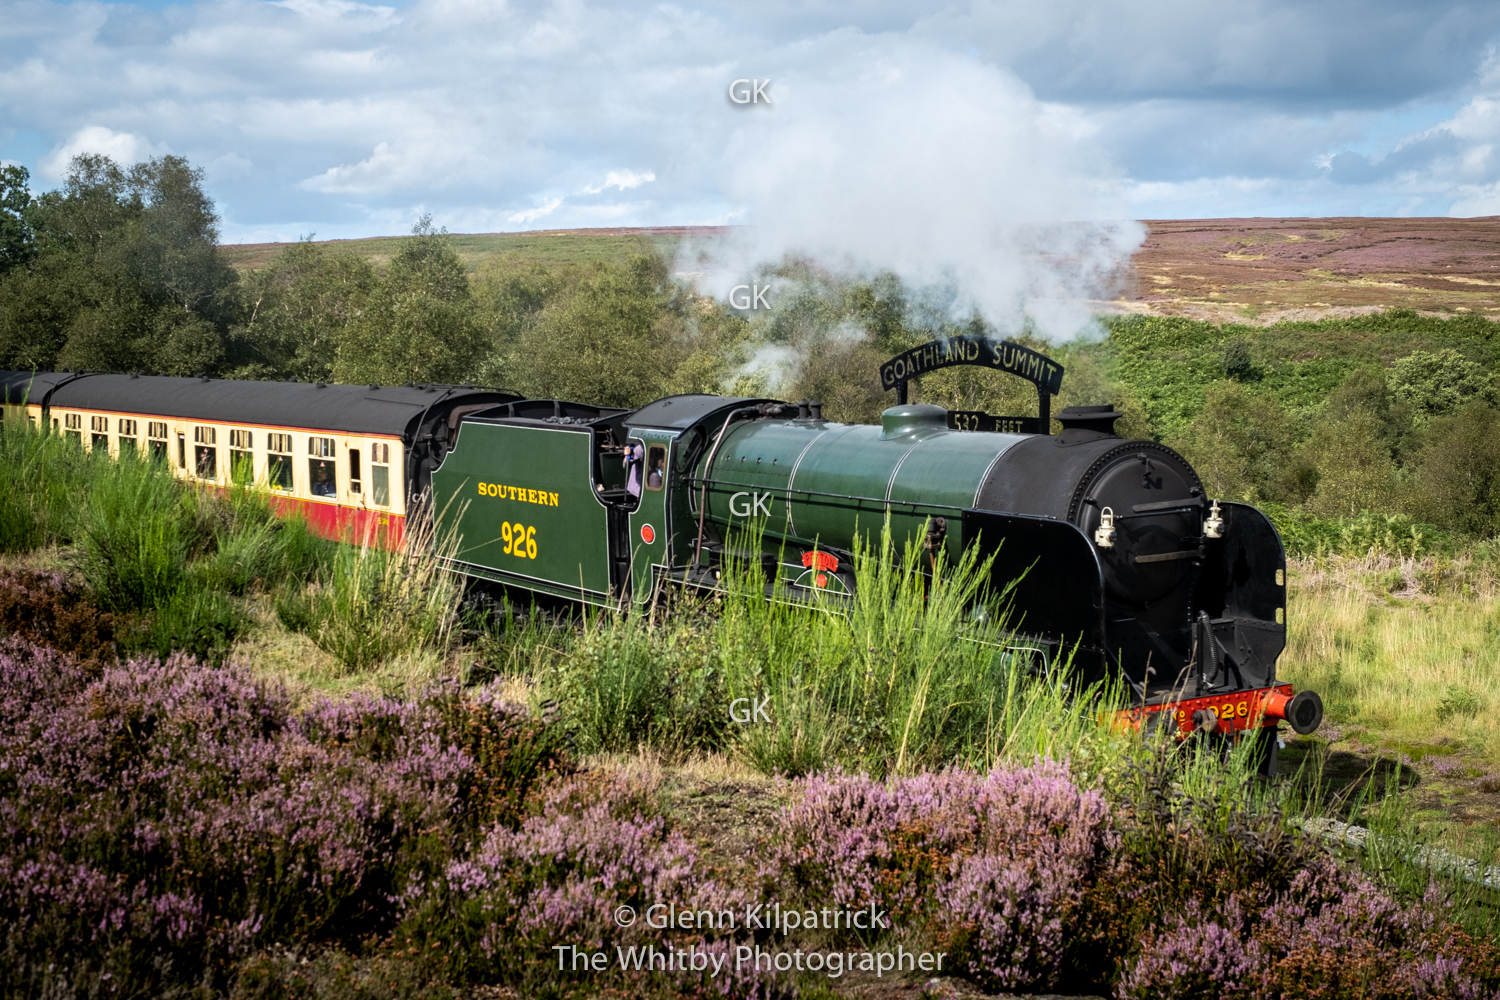 Repton - North Yorkshire Moors Railway - Fenn Bogs Goathland Summit